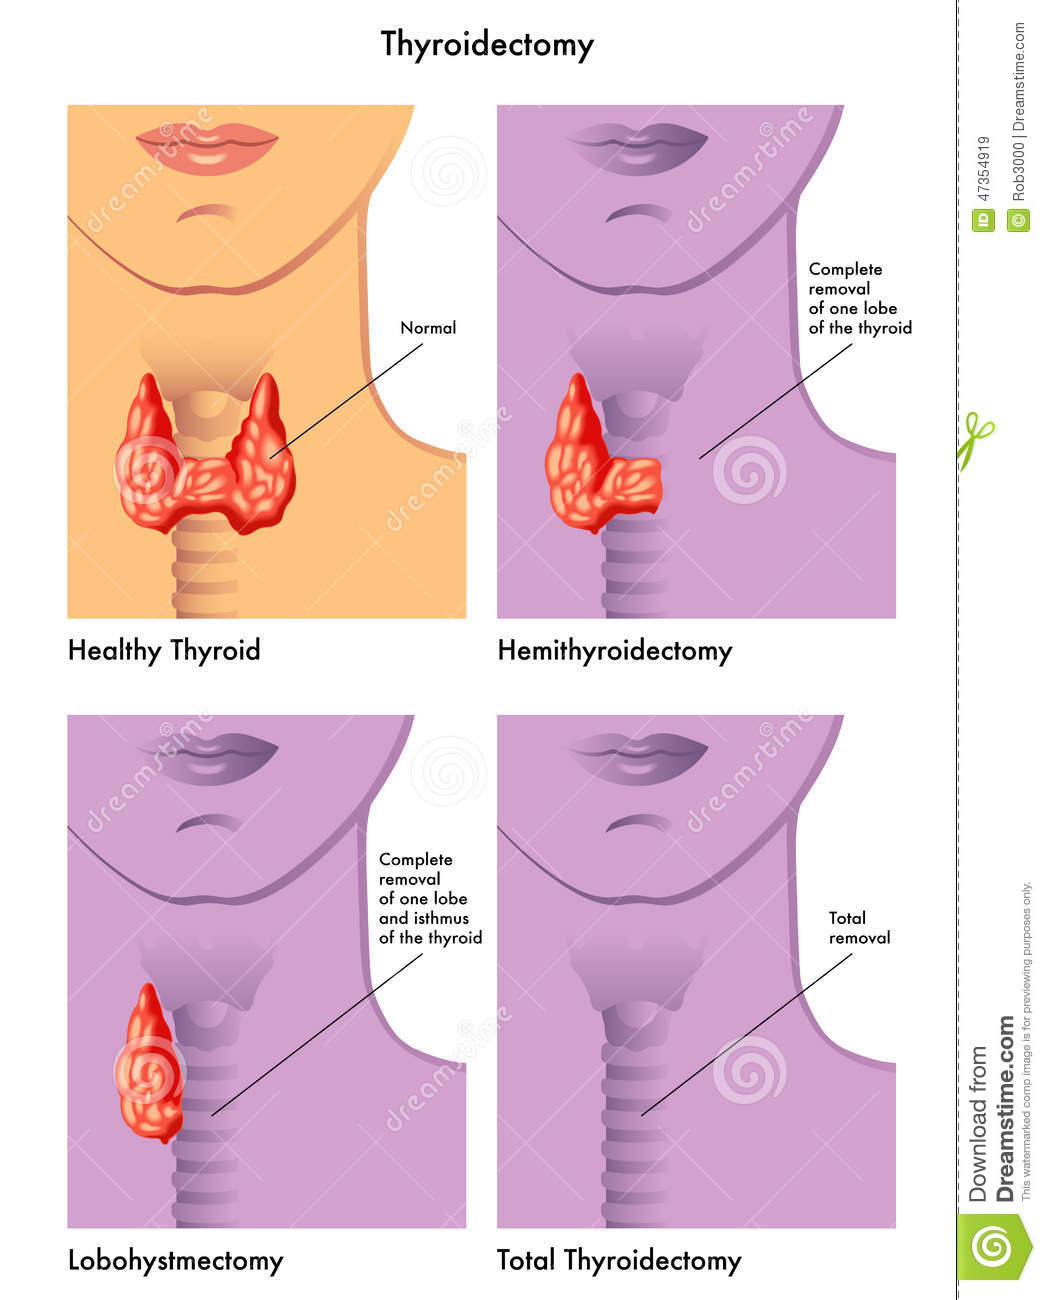 thyroid lobectomy Looking for online definition of lobectomy in the medical dictionary lobectomy explanation free a surgical procedure that removes one lobe of the thyroid.